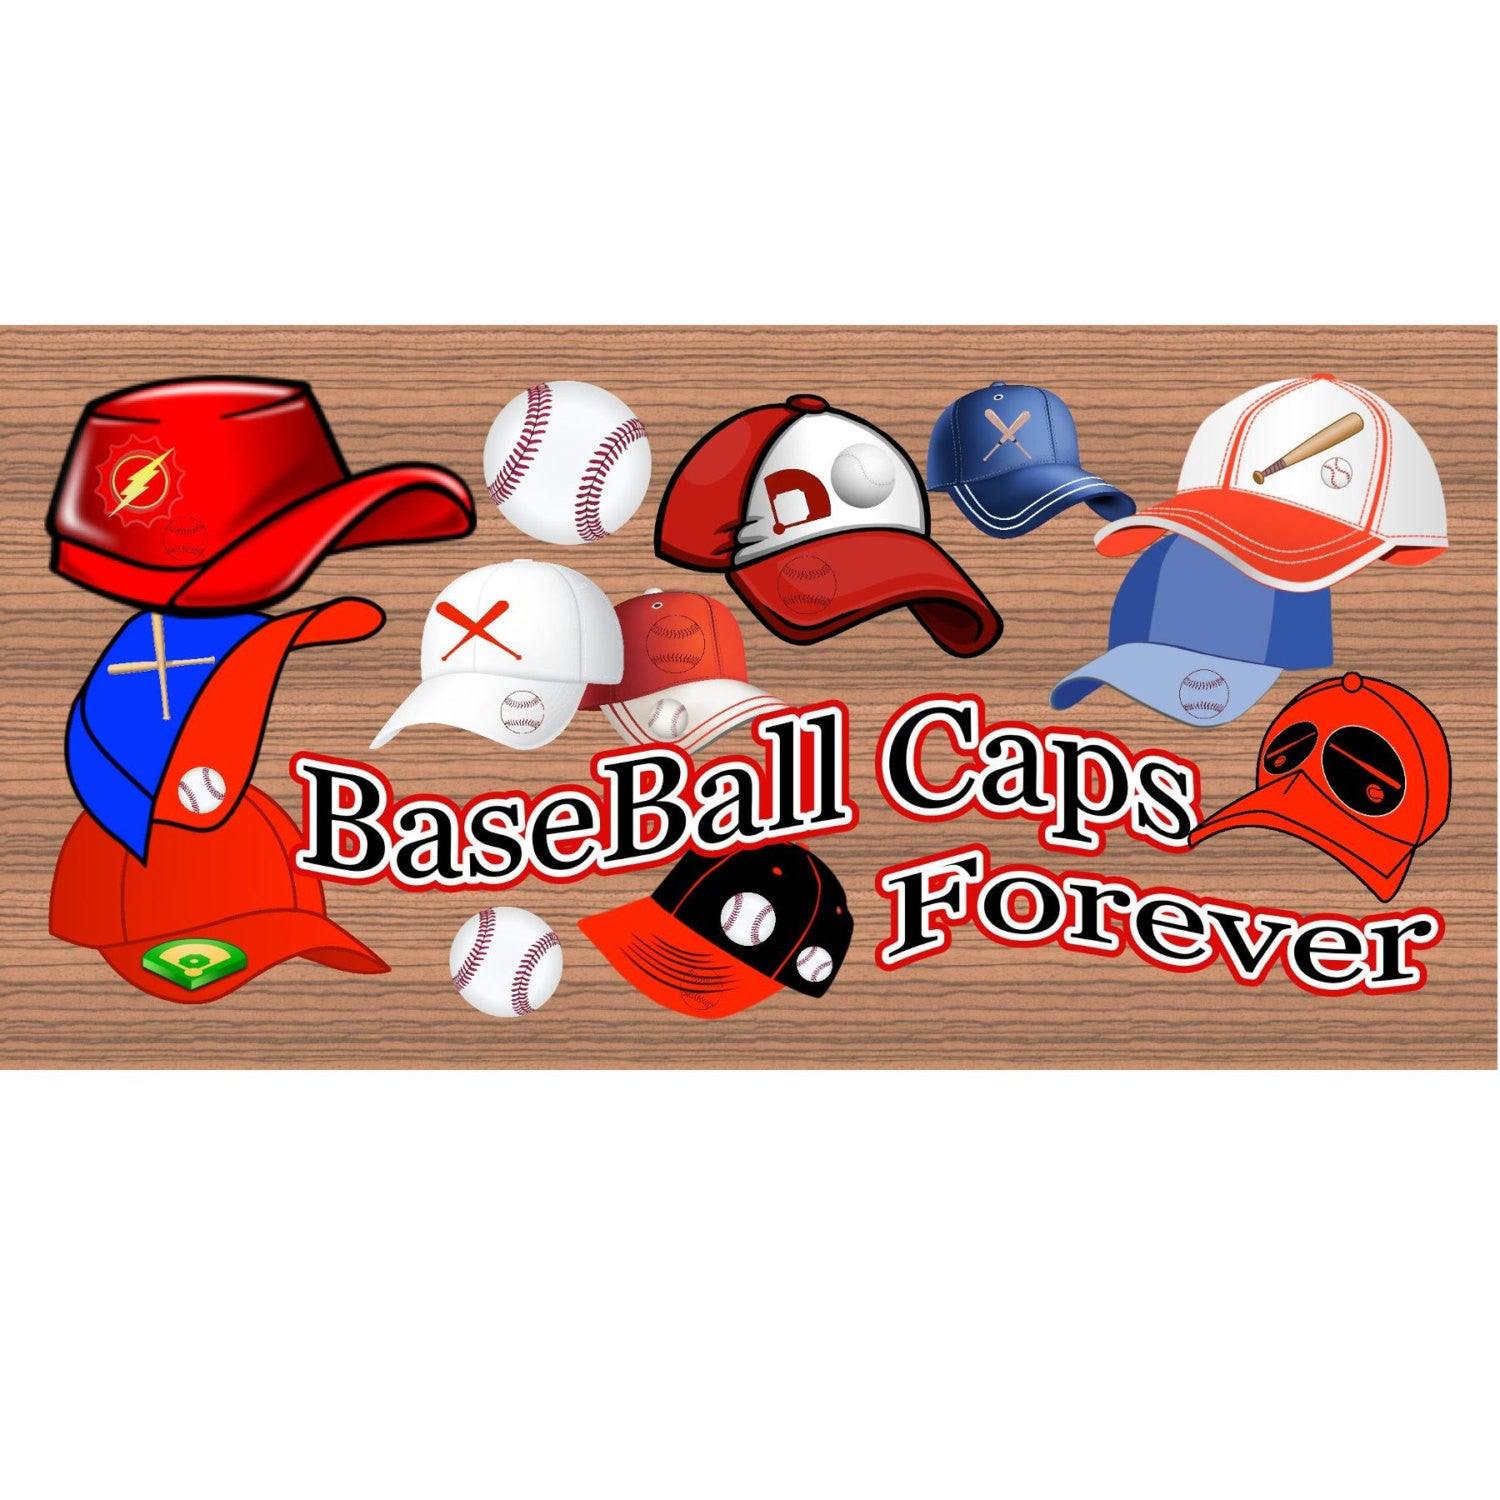 Baseball Wood Signs - Baseball Caps Forever GS 2018